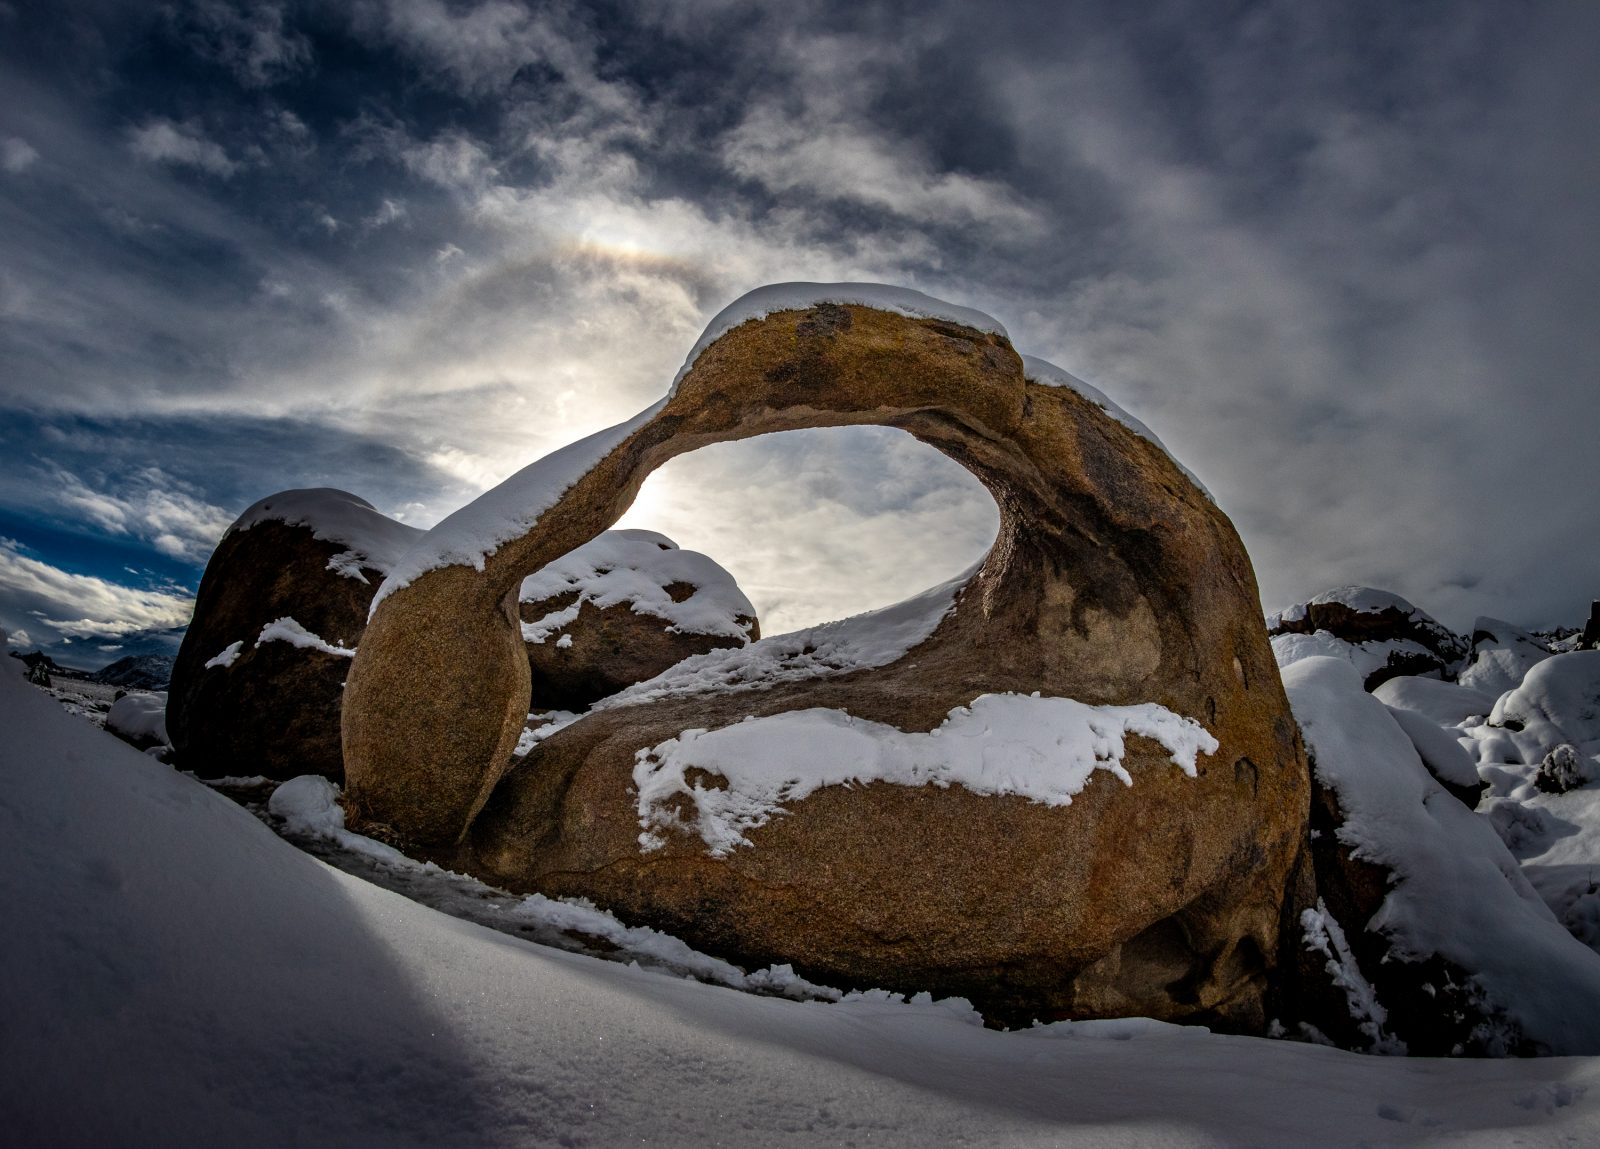 Snowy Mobius Arch